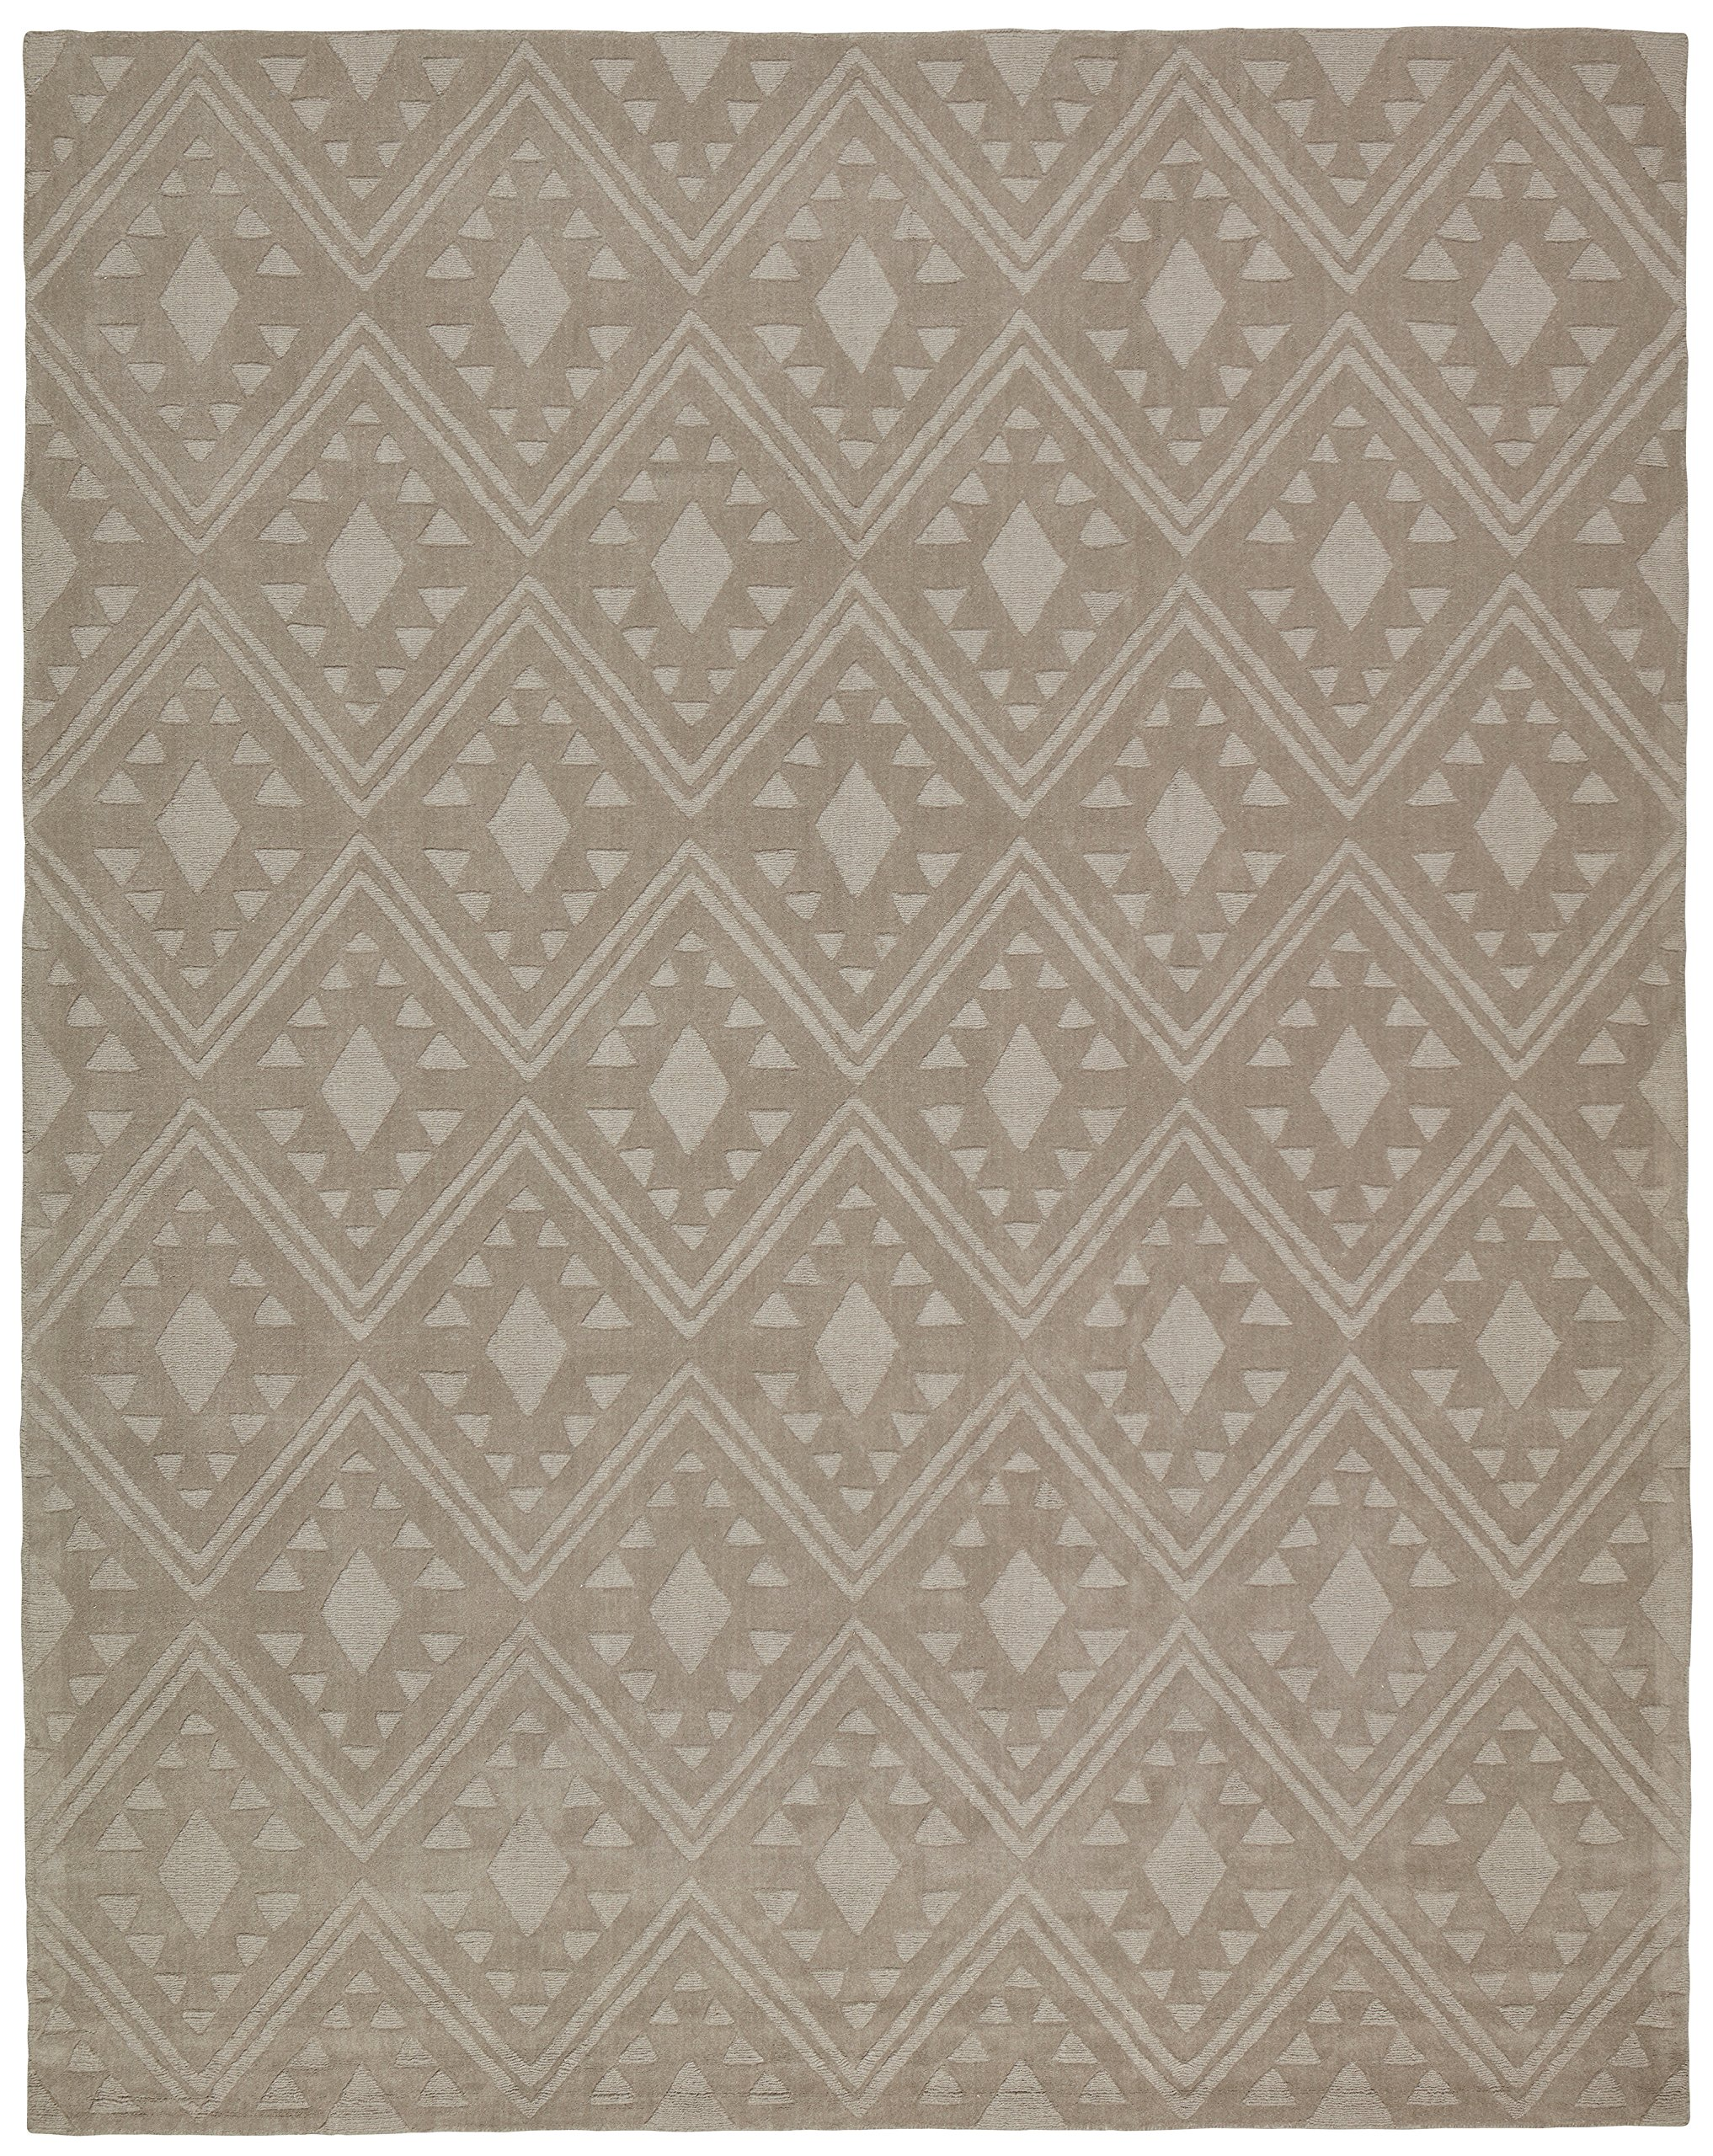 Stone & Beam Shooting Star Modern Diamond Wool Area Rug, 5' x 8', Taupe by Stone & Beam